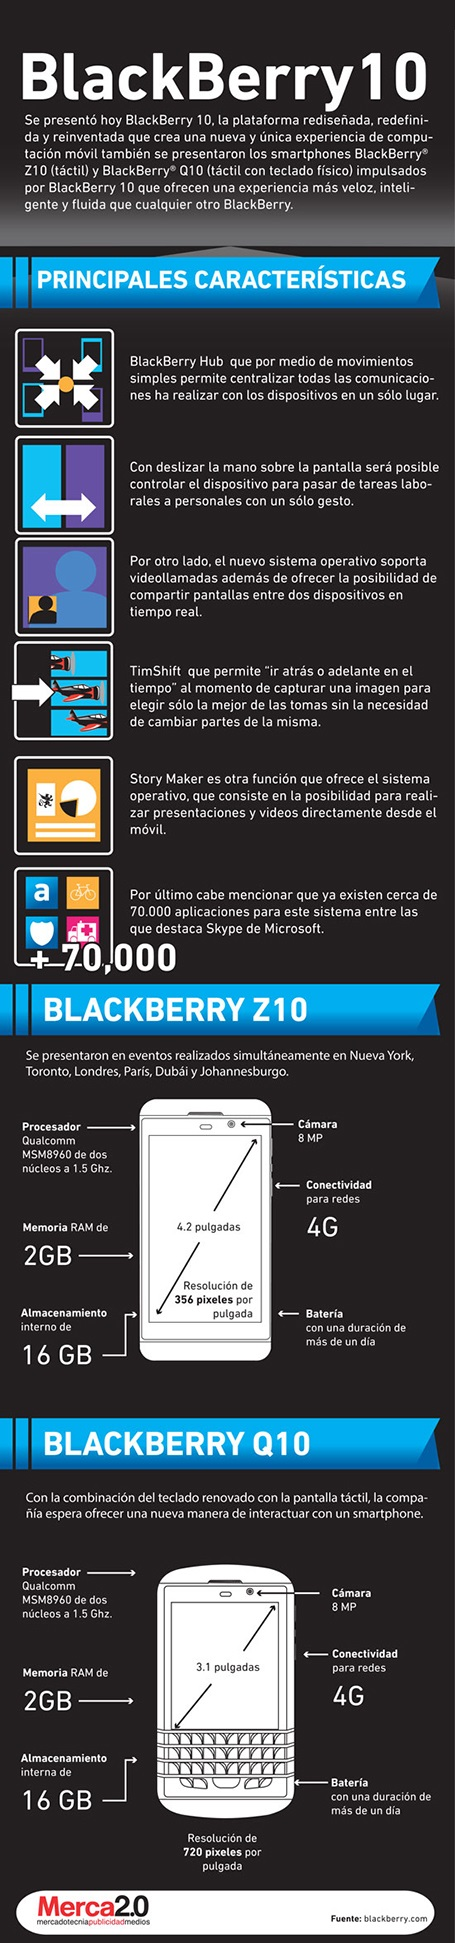 Infografía de BlackBerry 10